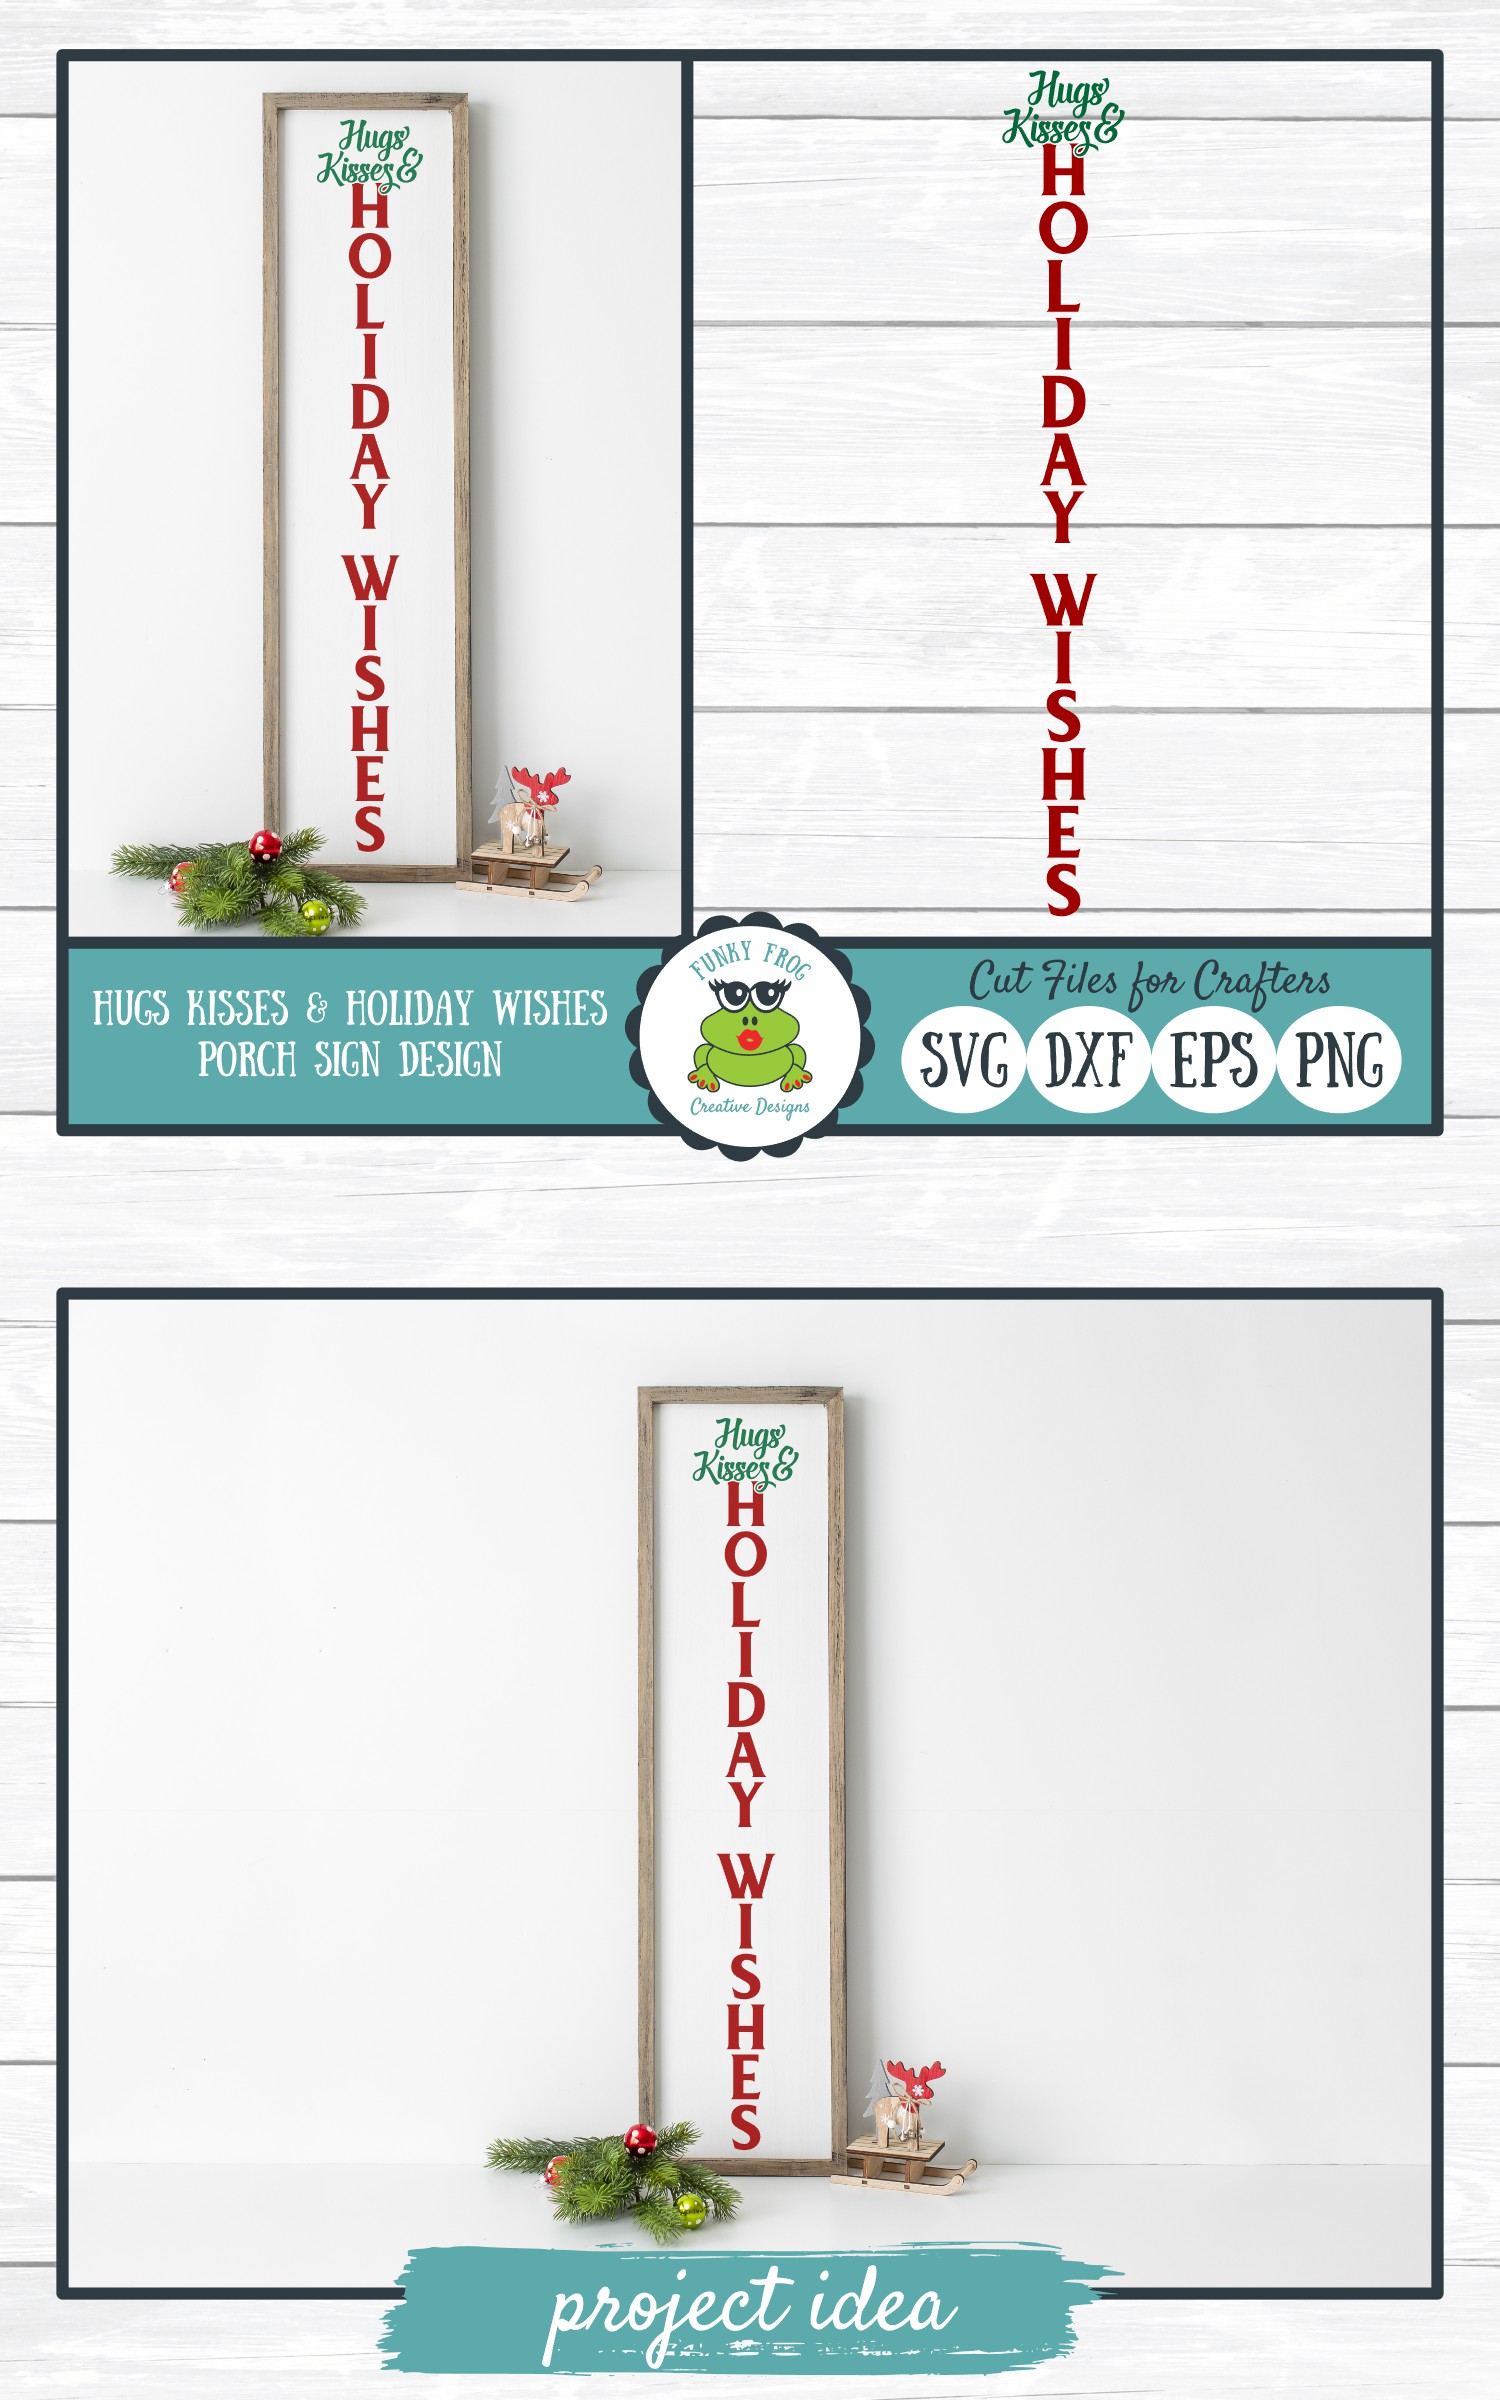 Hugs Kisses & Holiday Wishes Porch Sign Design example image 4